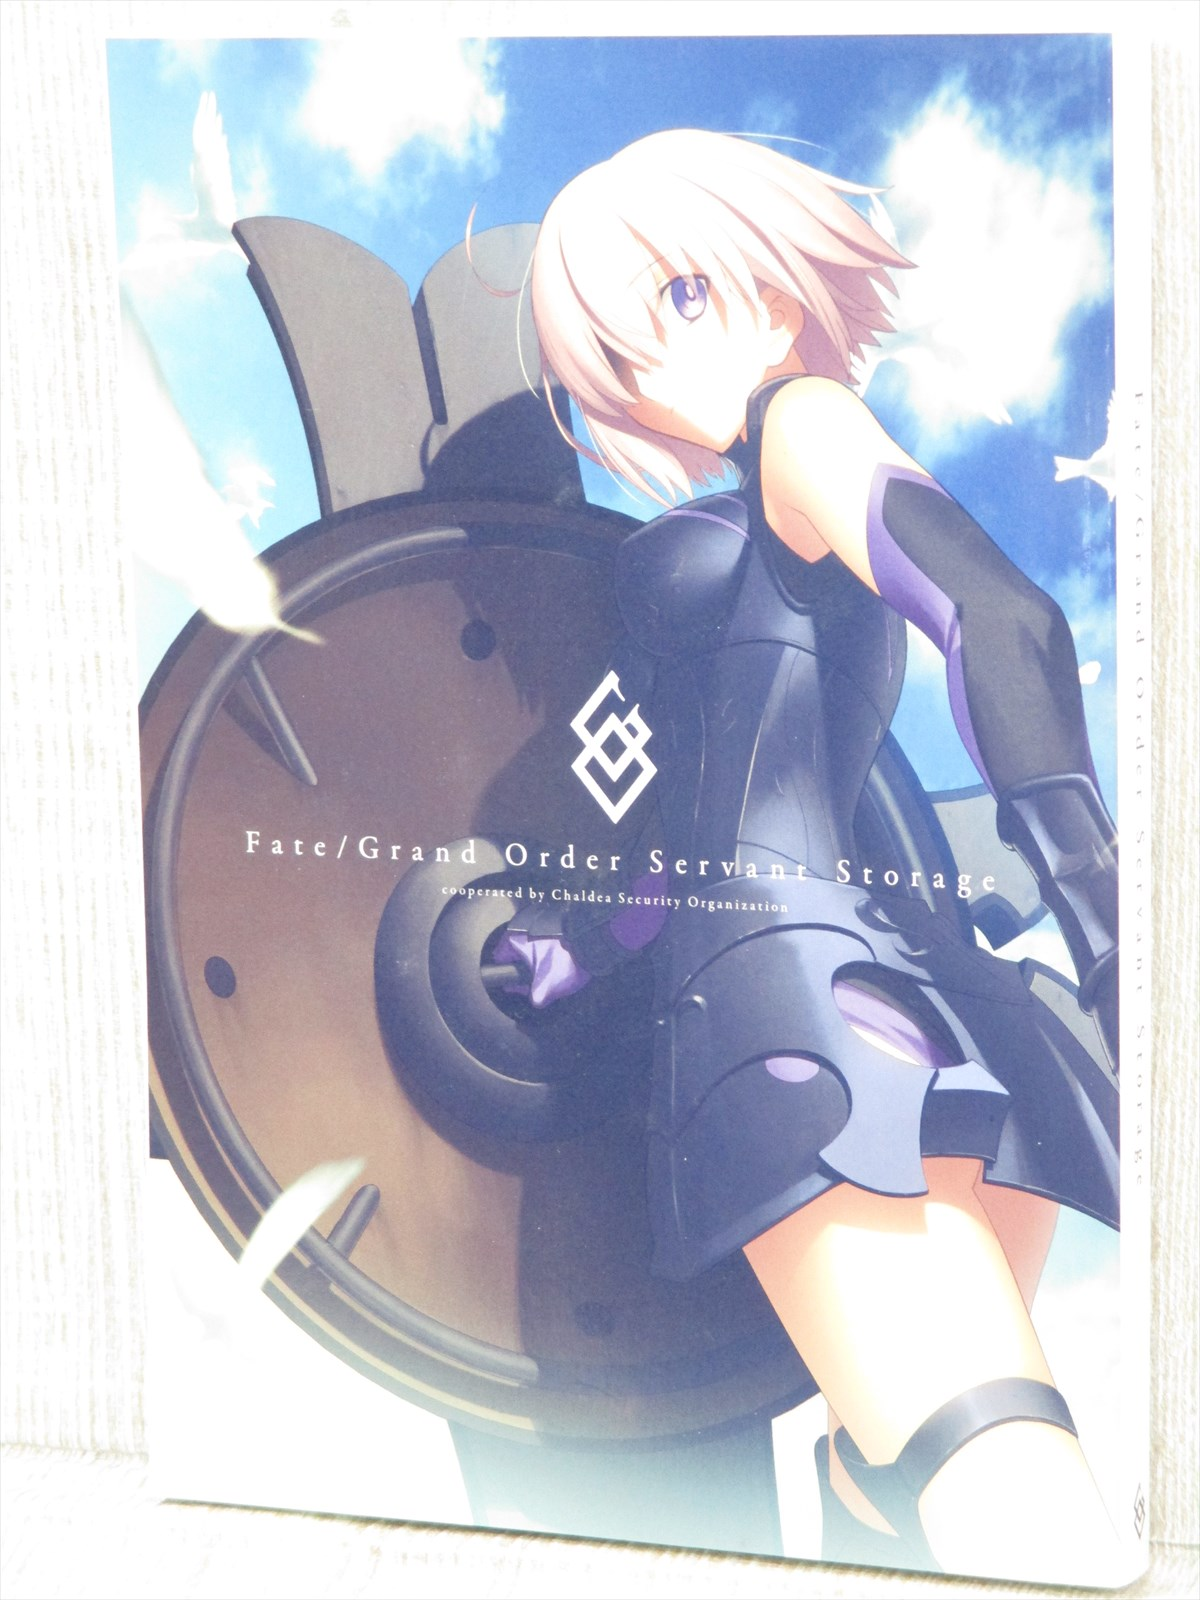 FATE GRAND ORDER Servant Storage Art Guide Book Ltd Type